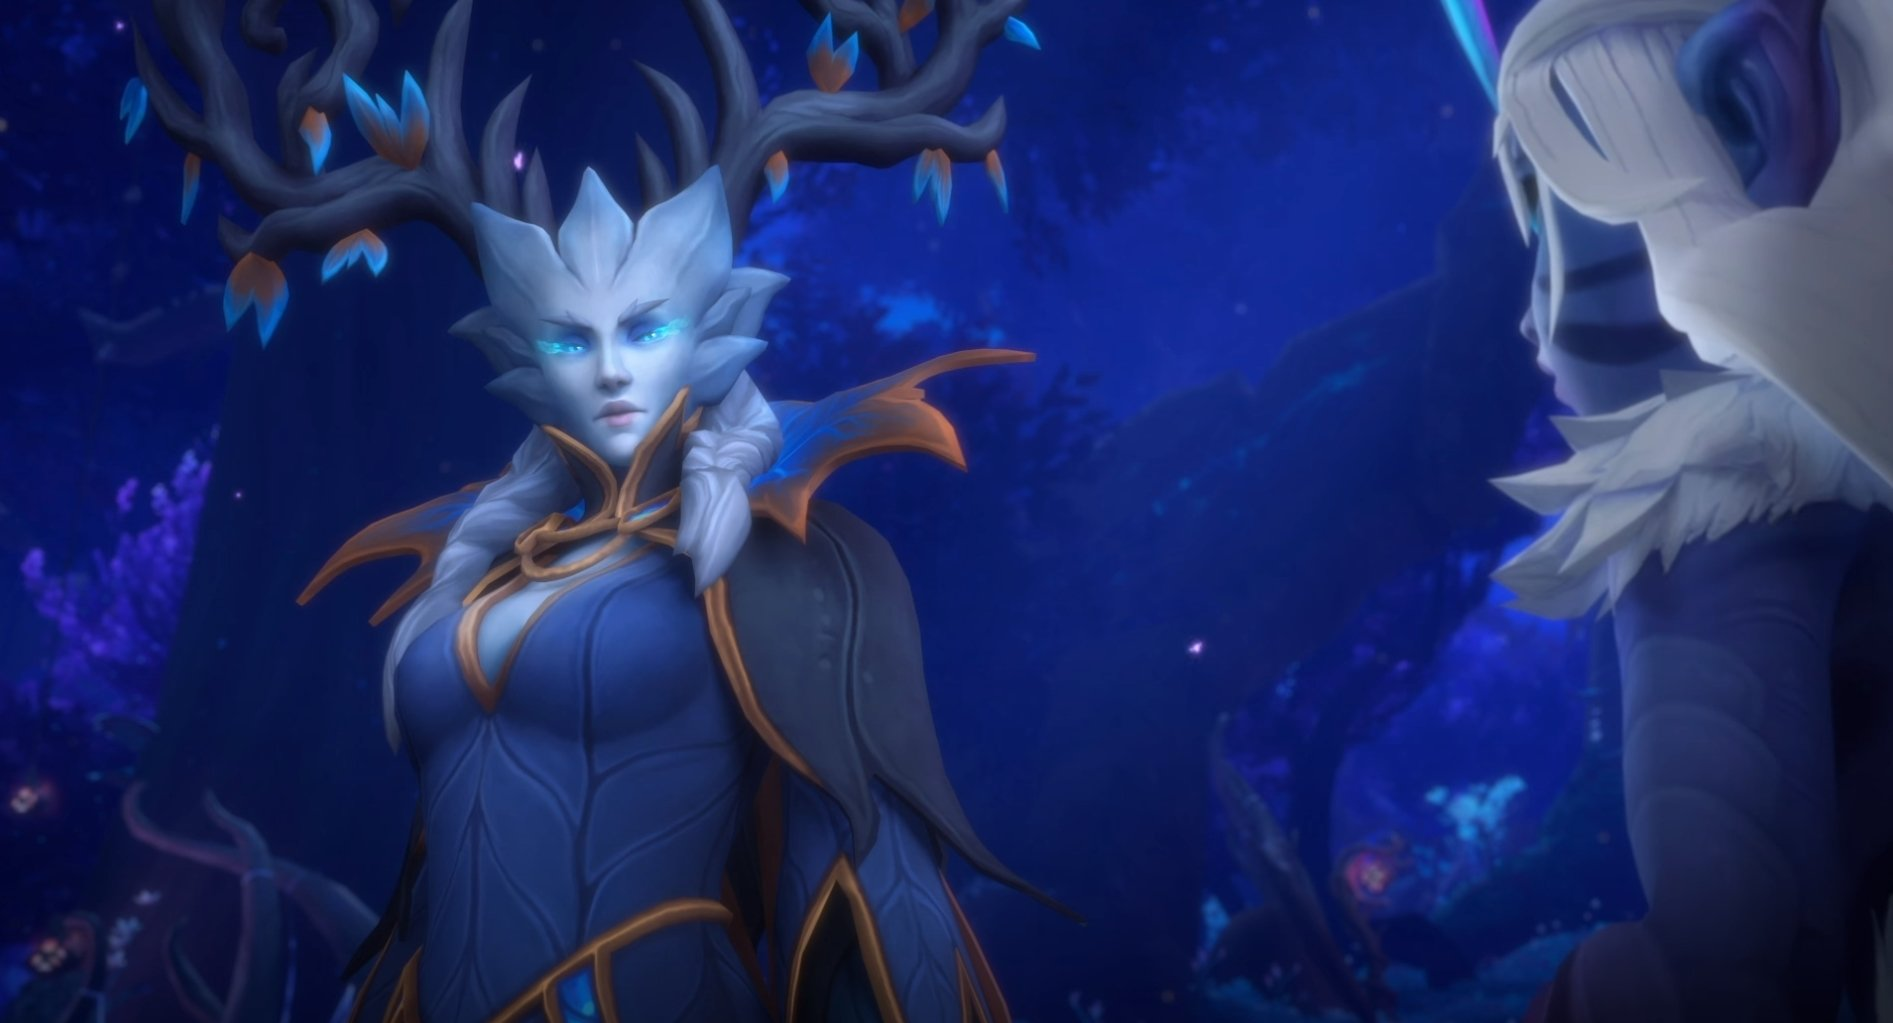 World Of Warcraft: Shadowlands Night Fae Covenant Receives Balance Tuning Ahead Of Expansion Release